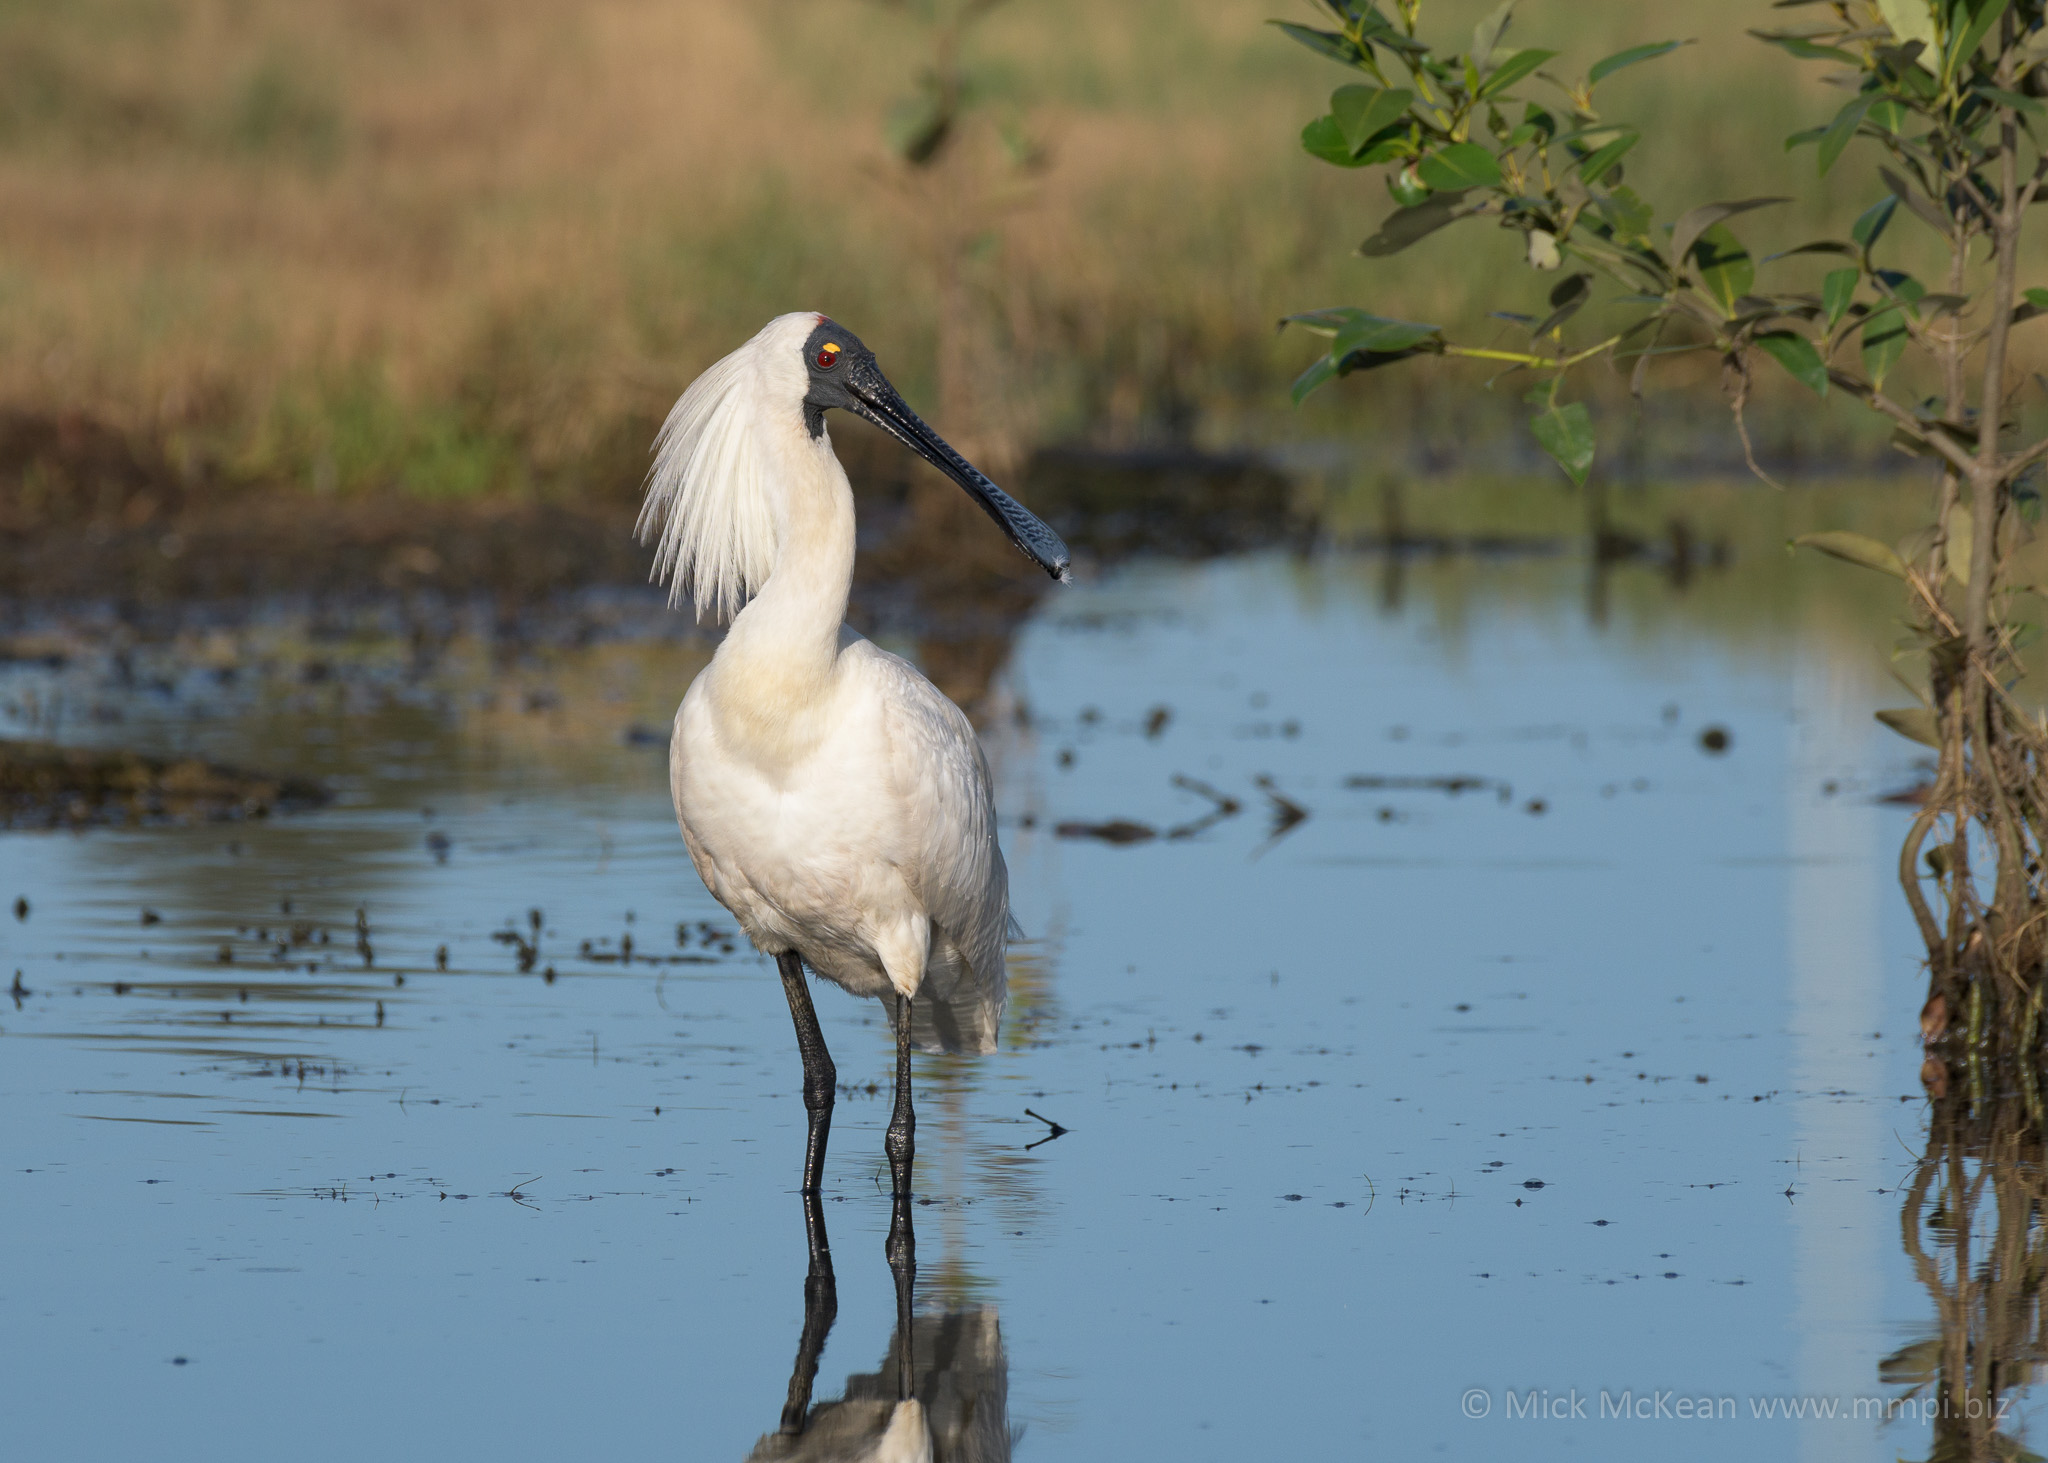 His Royal Spoonbillness